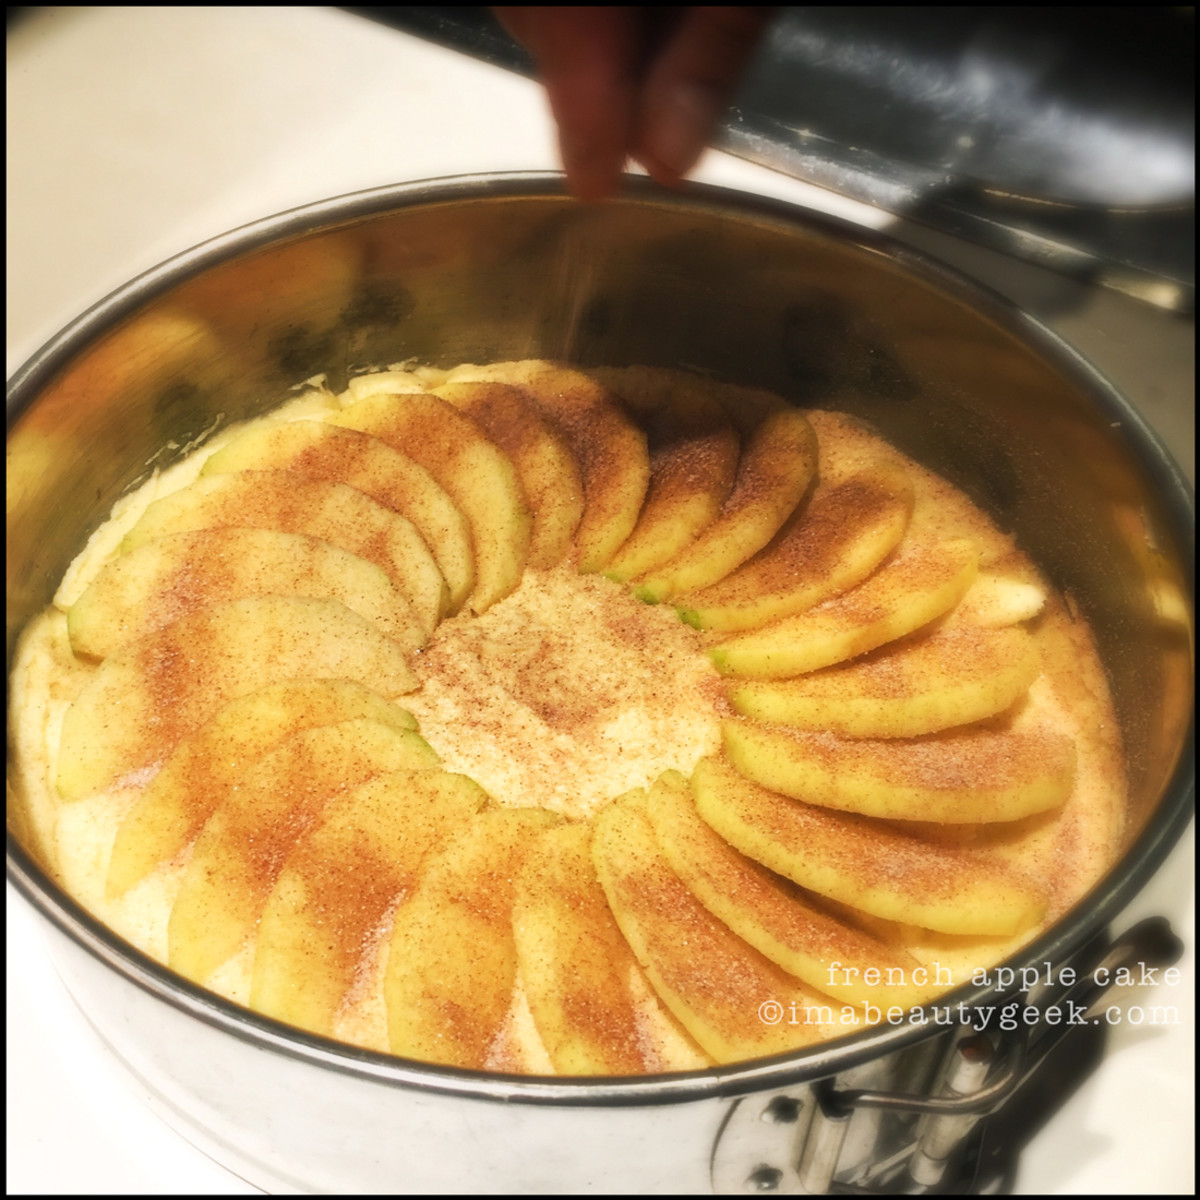 French Apple Cake Before Baking